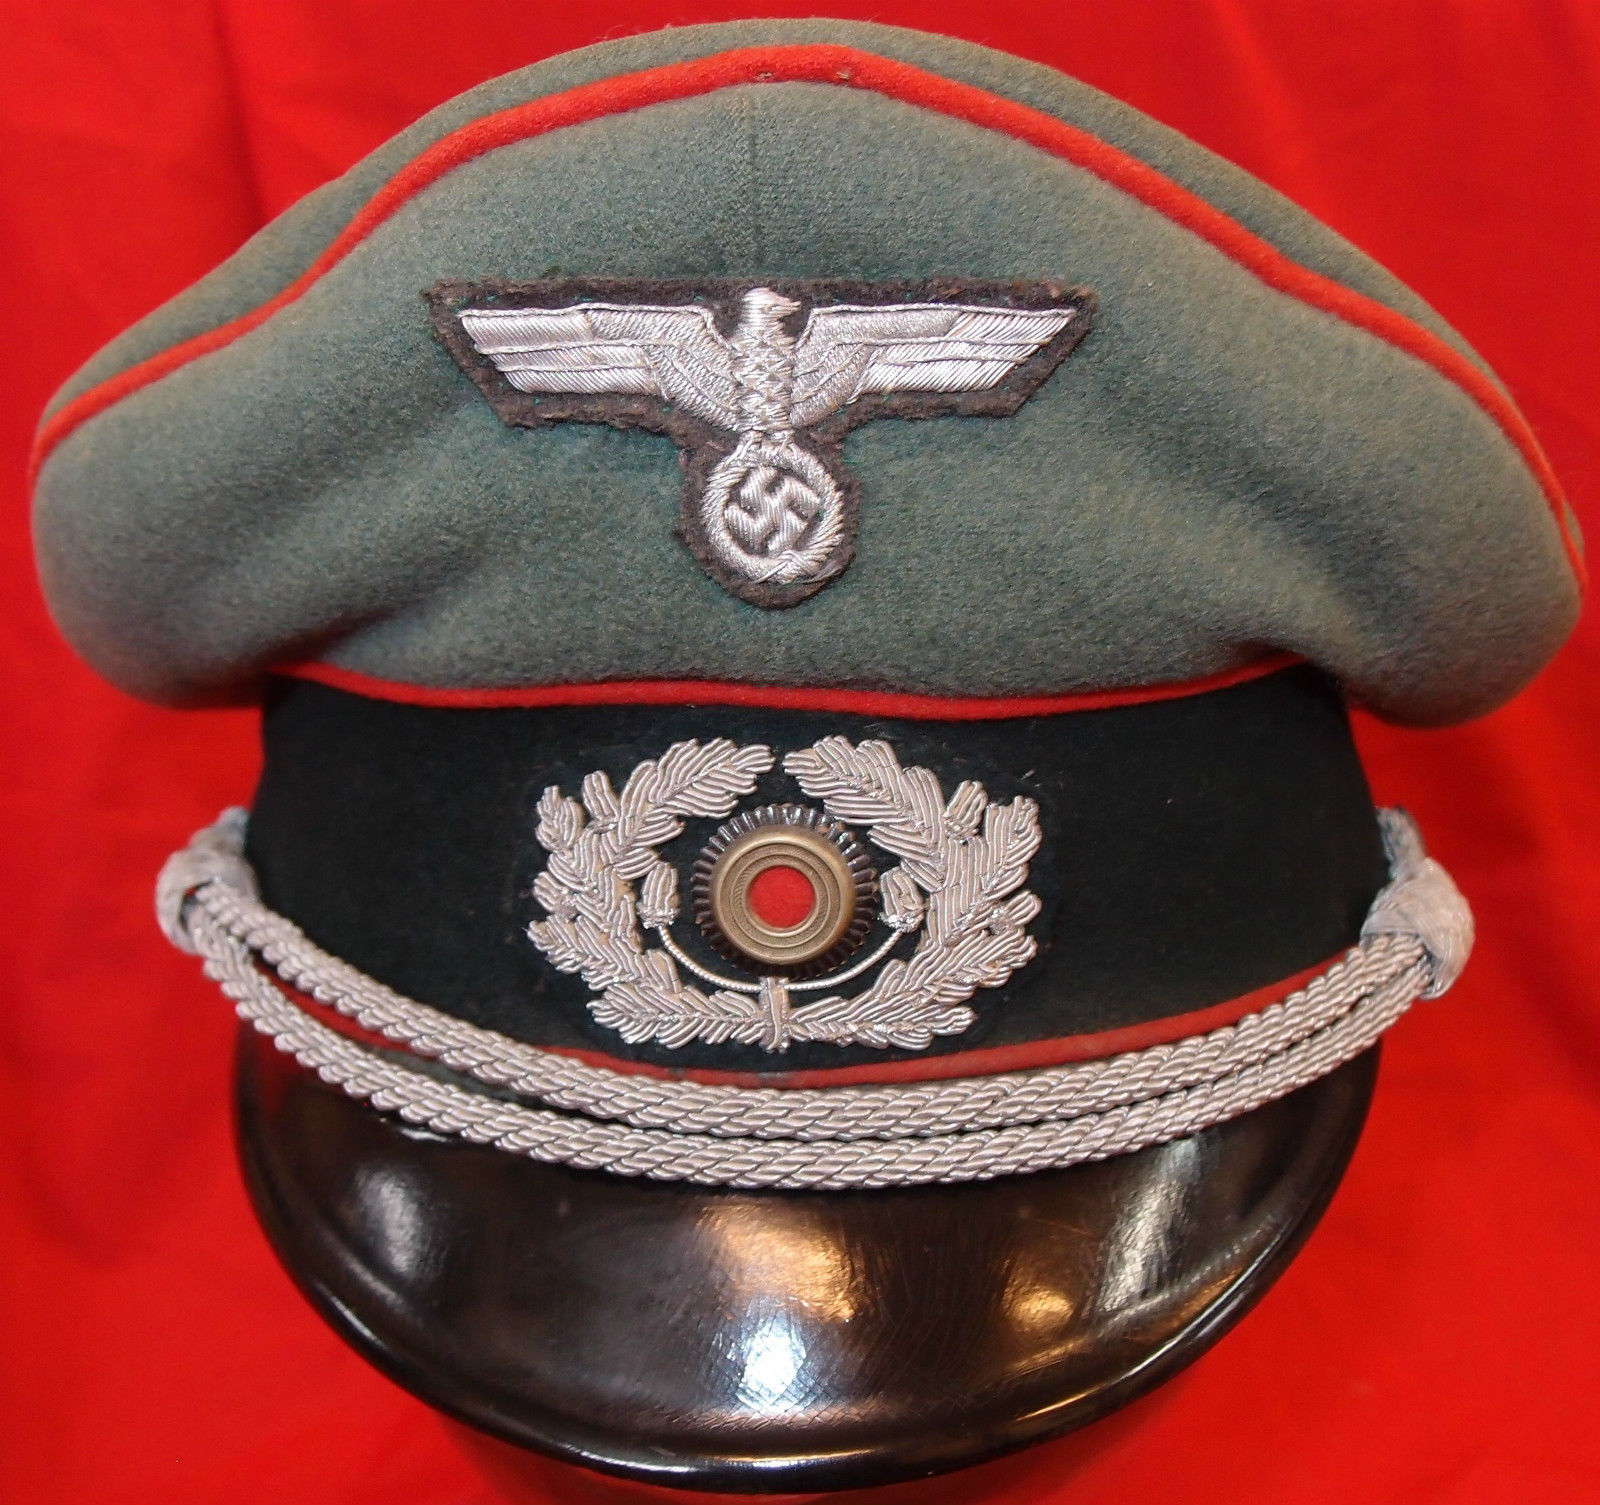 WW2 NAZI GERMANY ARMY ARTILLERY OFFICER PEAKED CAP HAT